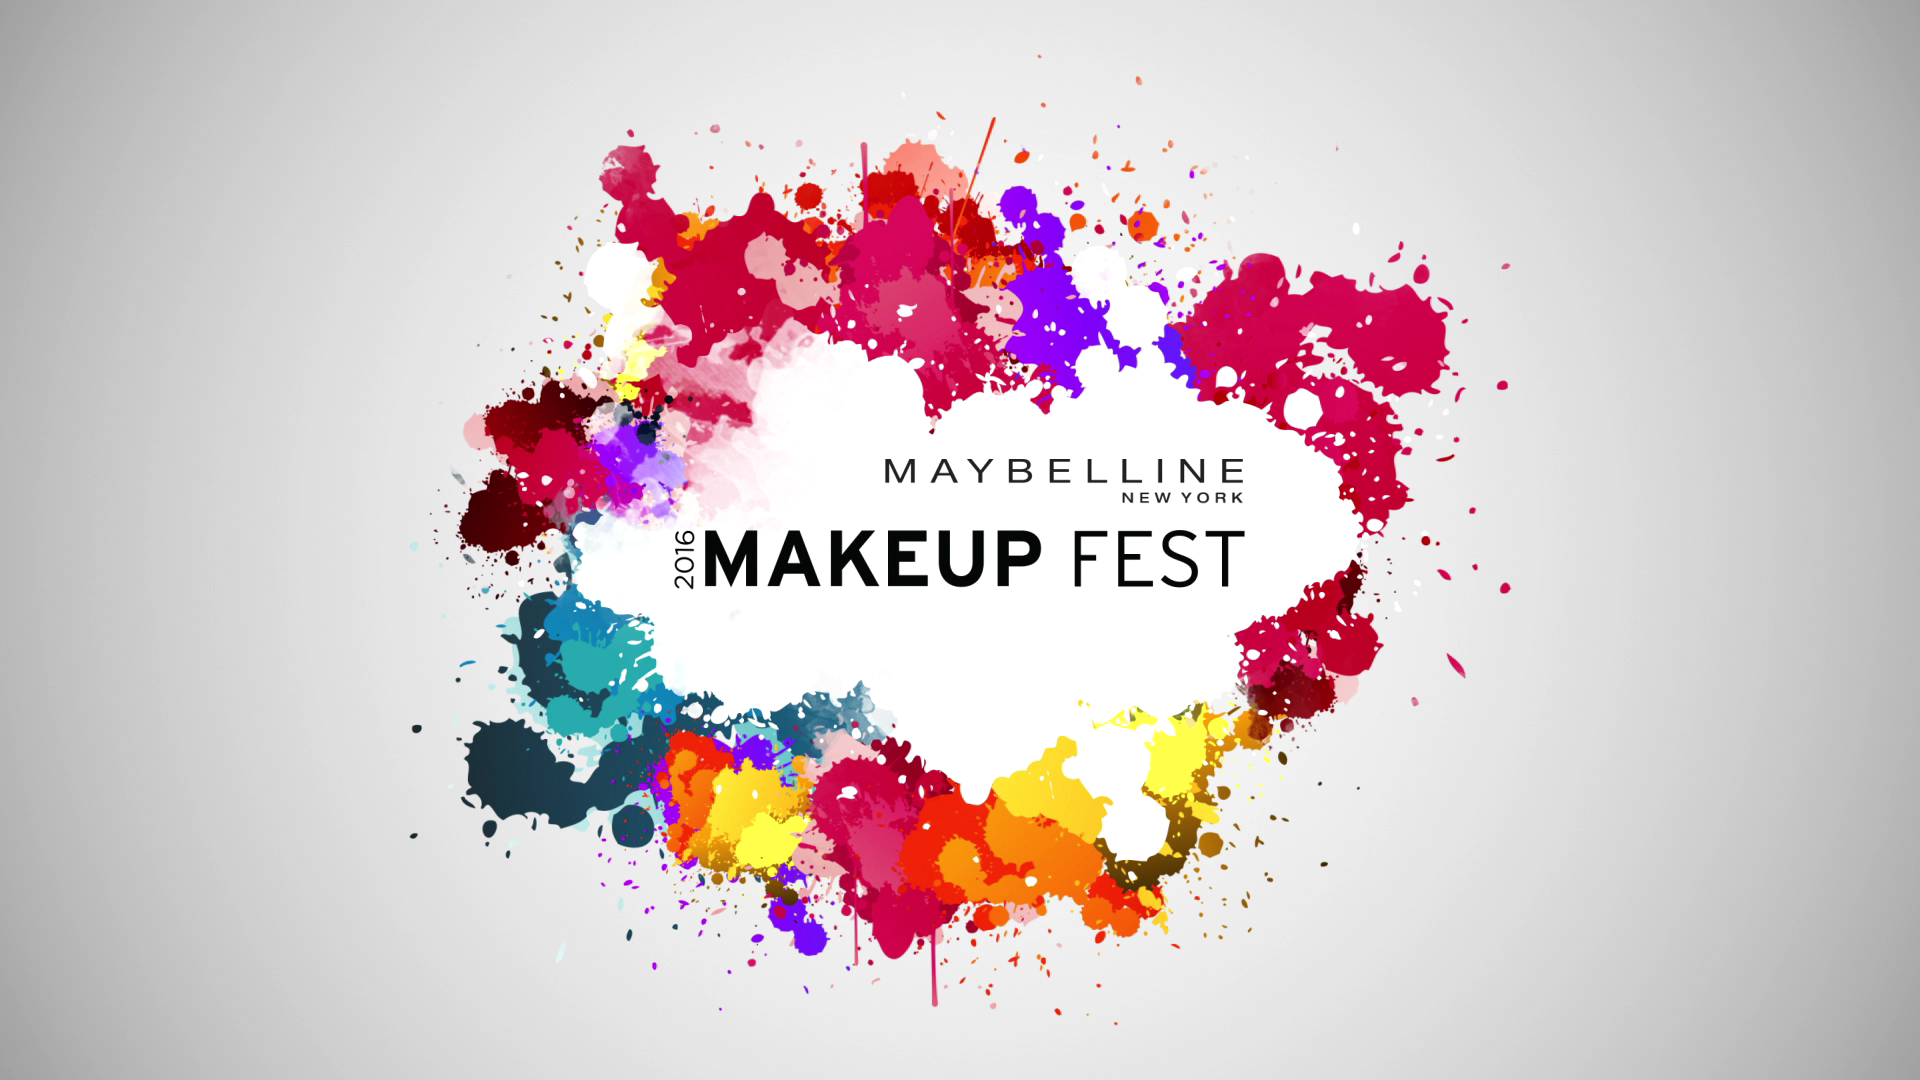 Maybelline Makeup Fest